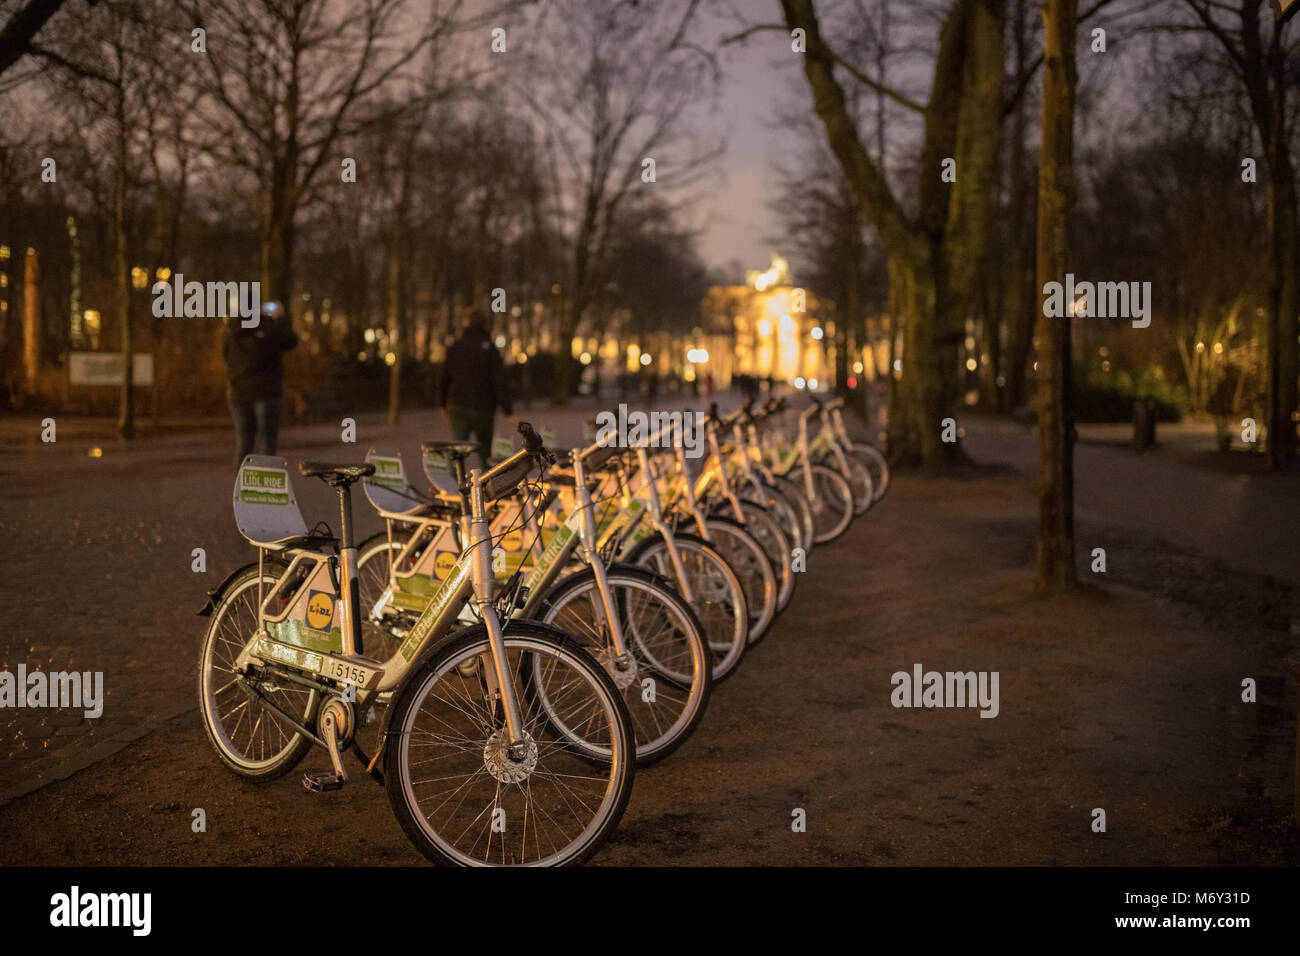 Bicycles in the Tiergarten at night, Berlin, Germany Stock Photo